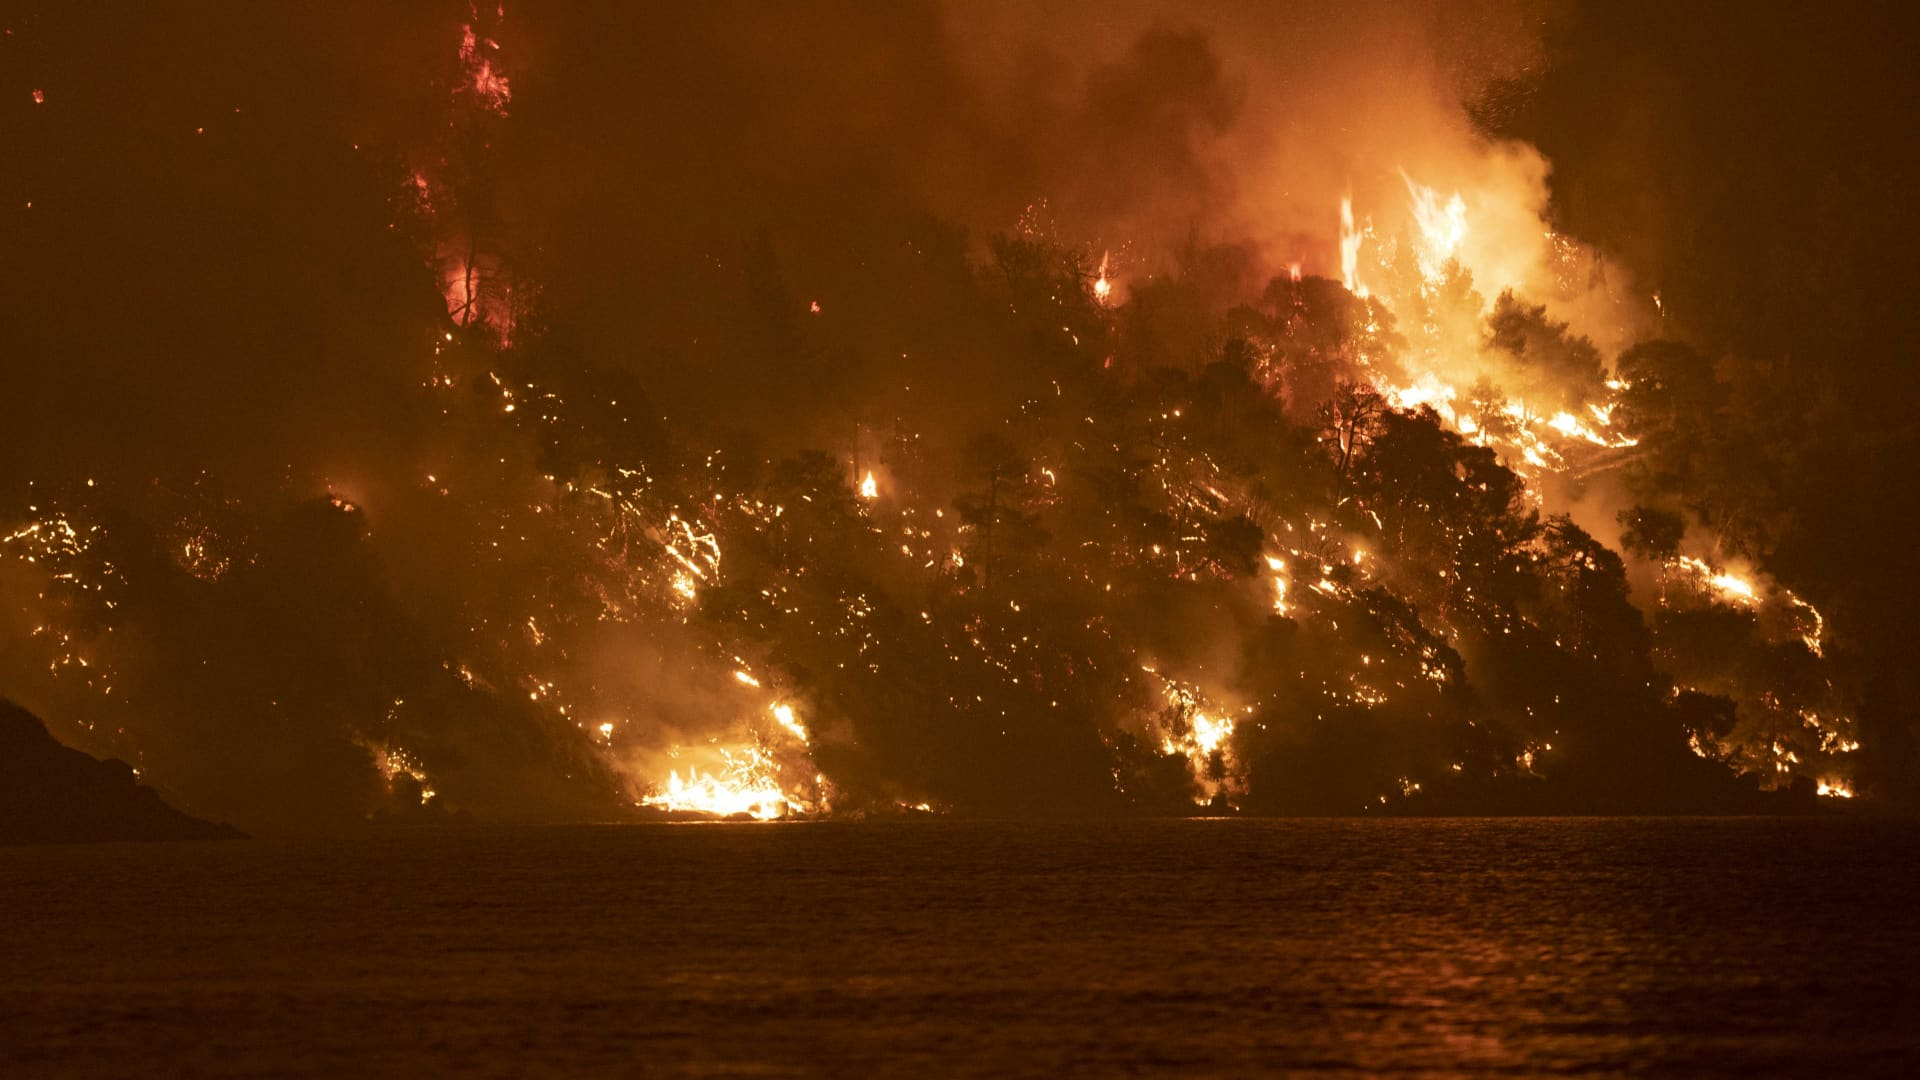 Wildfire approaches the seaside village of Limni, on the island of Evia, Greece, on August 6, 2021.